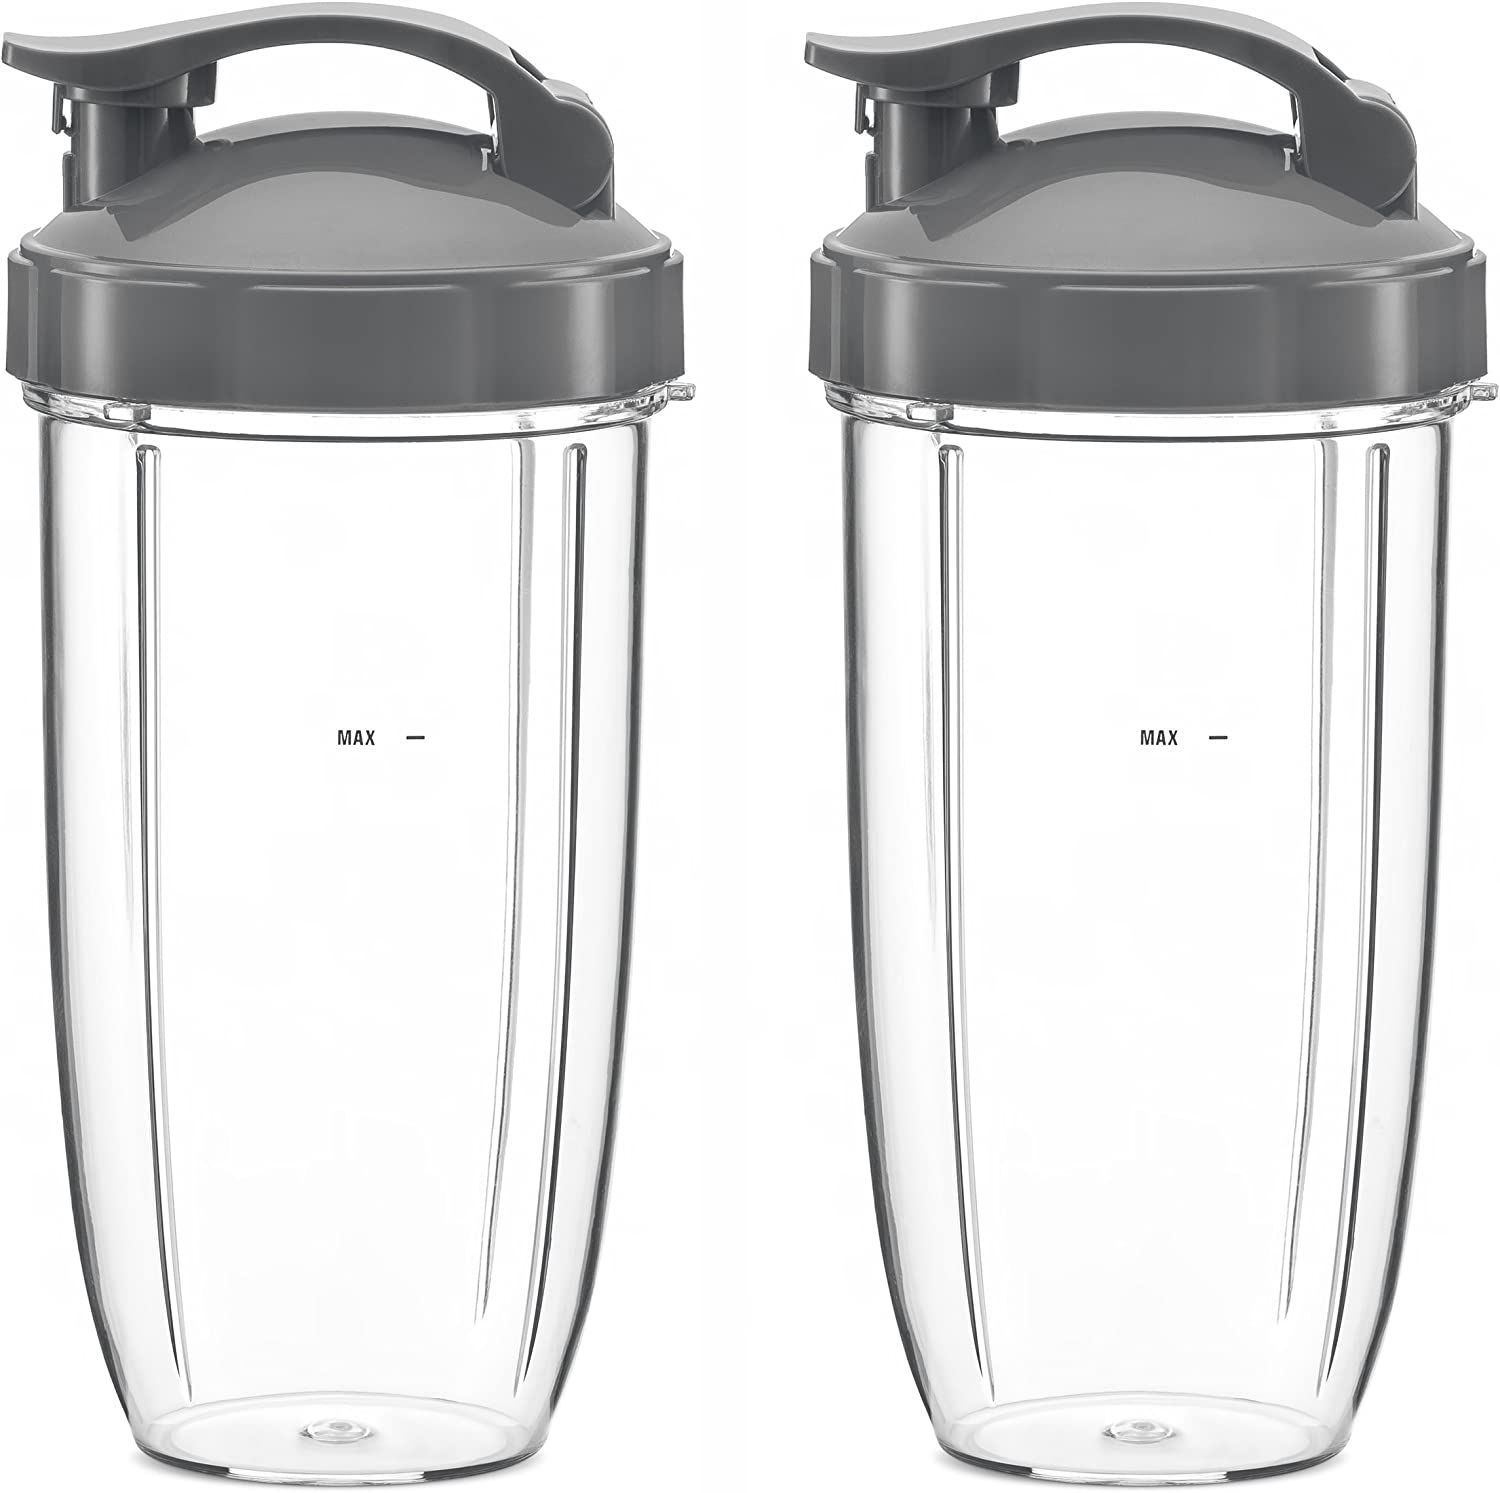 32oz Replacement Cups with Flip Top To Go Lid Compatible With NutriBullet 600w and Pro 900w Blender (2 Pack) by Preferred Parts